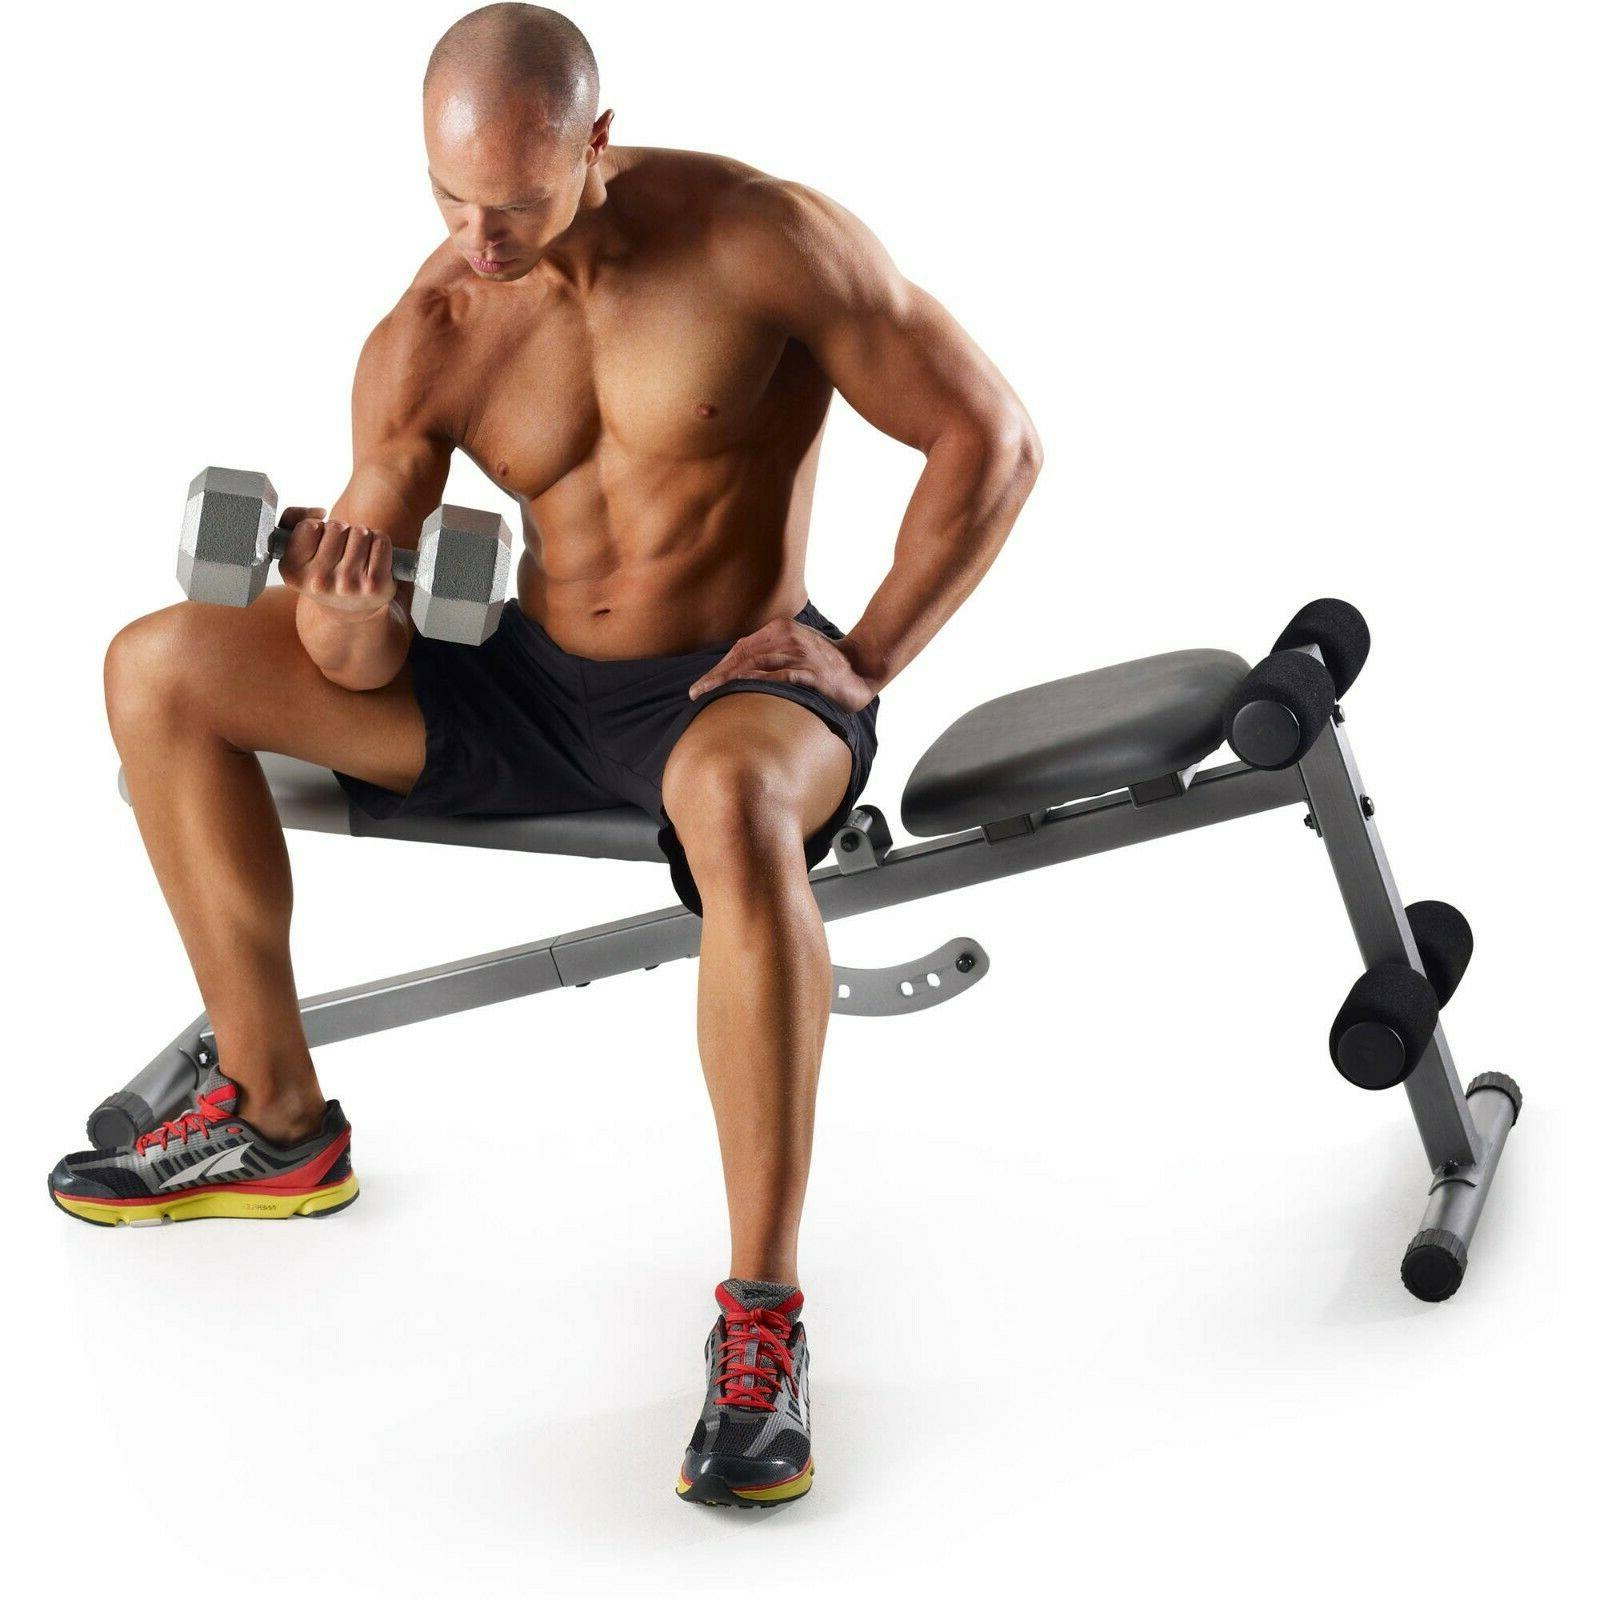 ADJUSTABLE WEIGHT BENCH Flat Workout